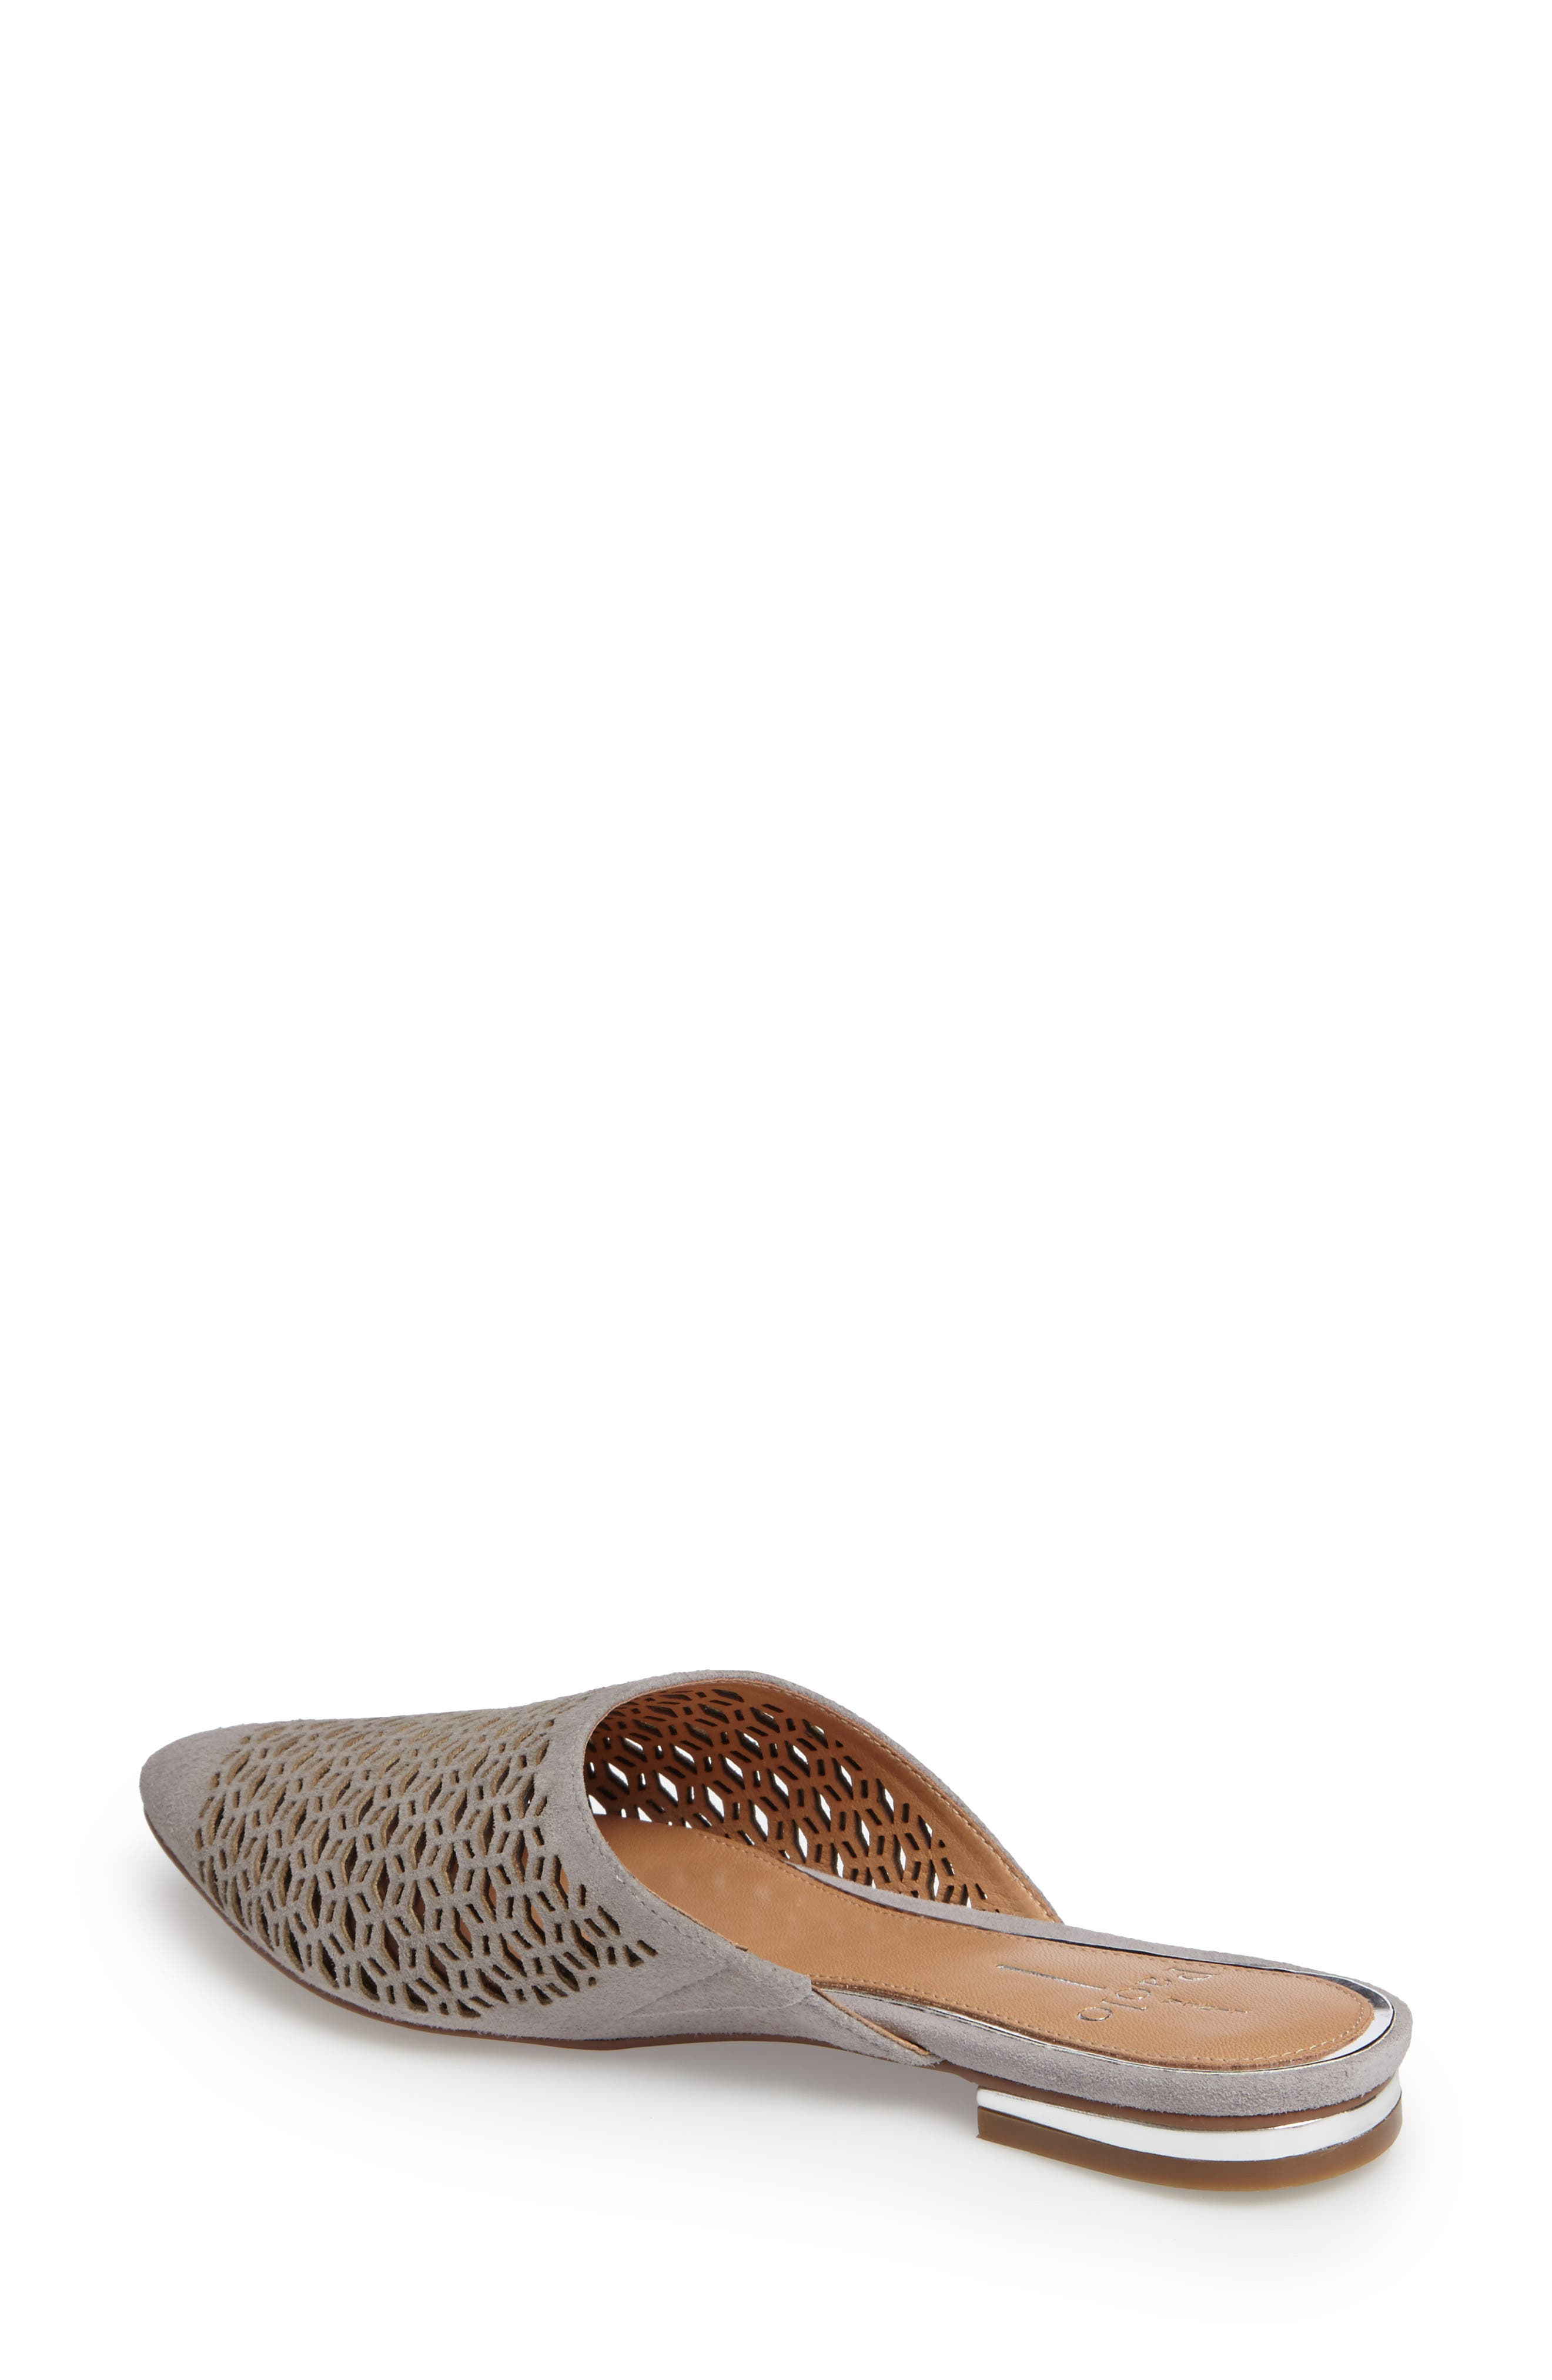 Daisy Perforated Mule,                             Alternate thumbnail 6, color,